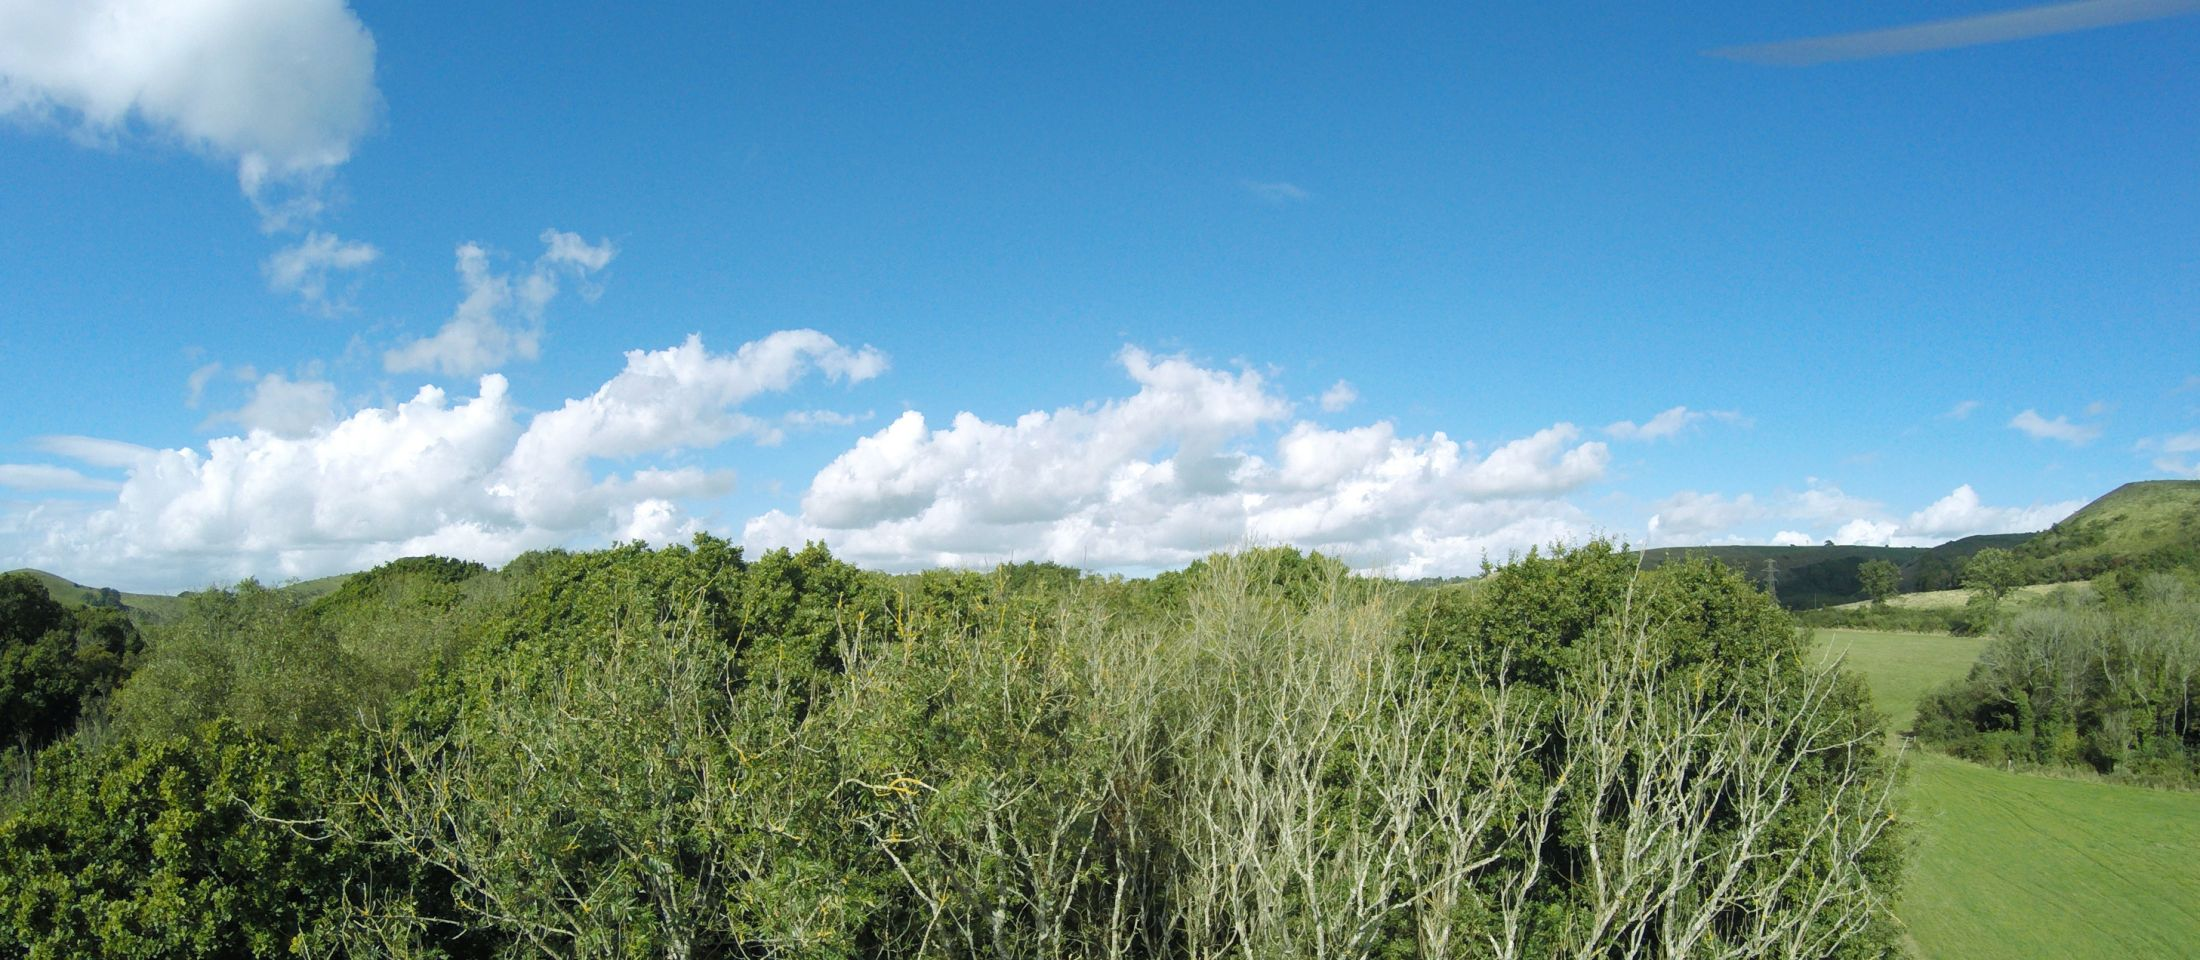 The effects of ash dieback in the Kent Downs. Photo: Kent Downs AONB, 30 Sept 2016.